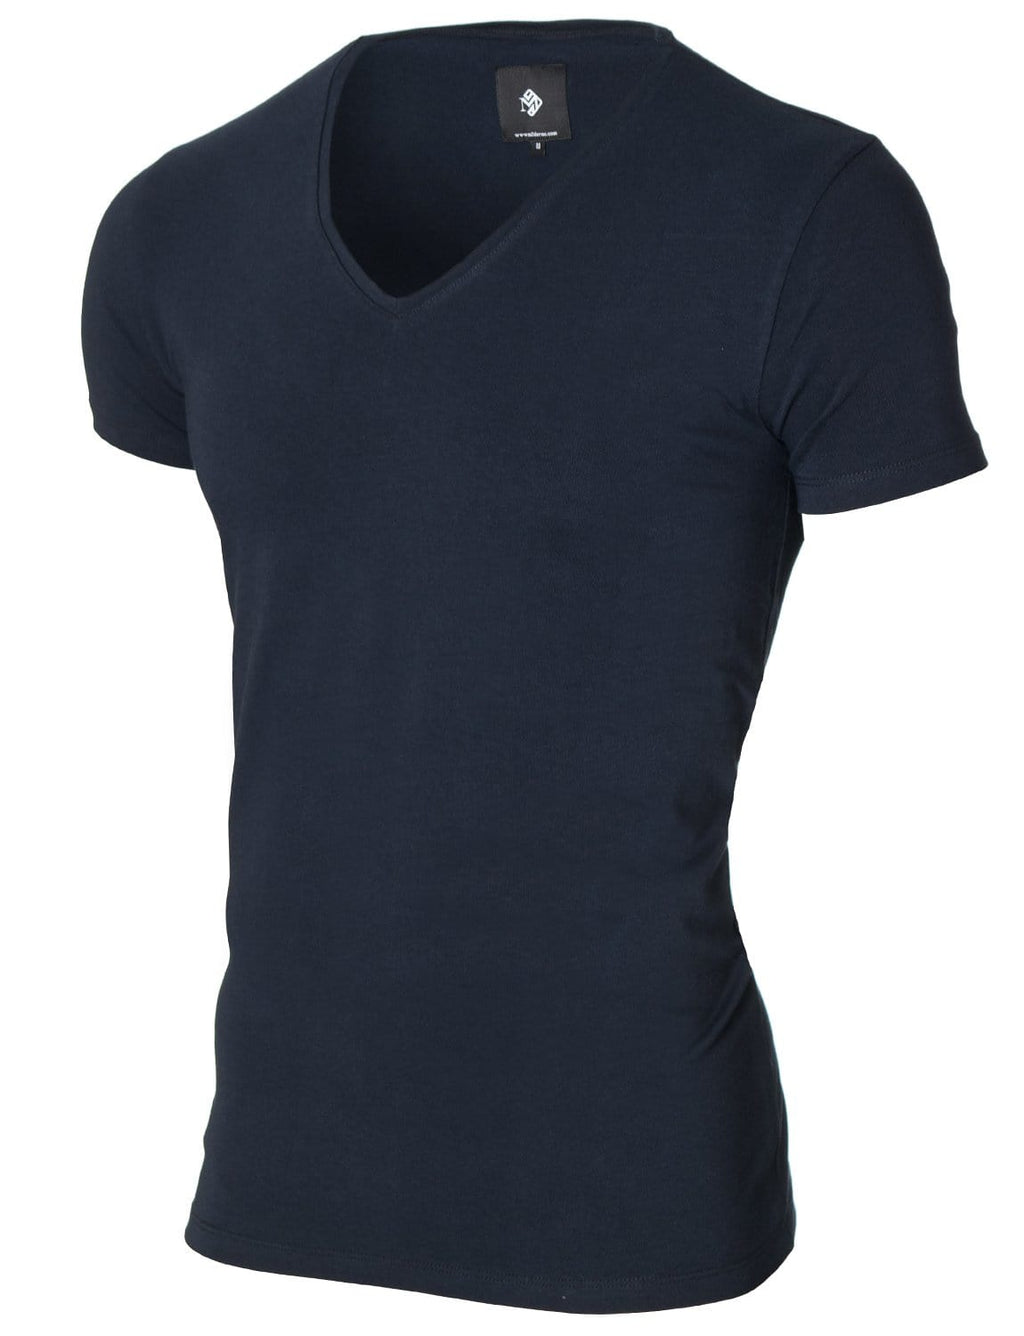 Mens basic V-neck t-shirt navy (MOD2001VN)